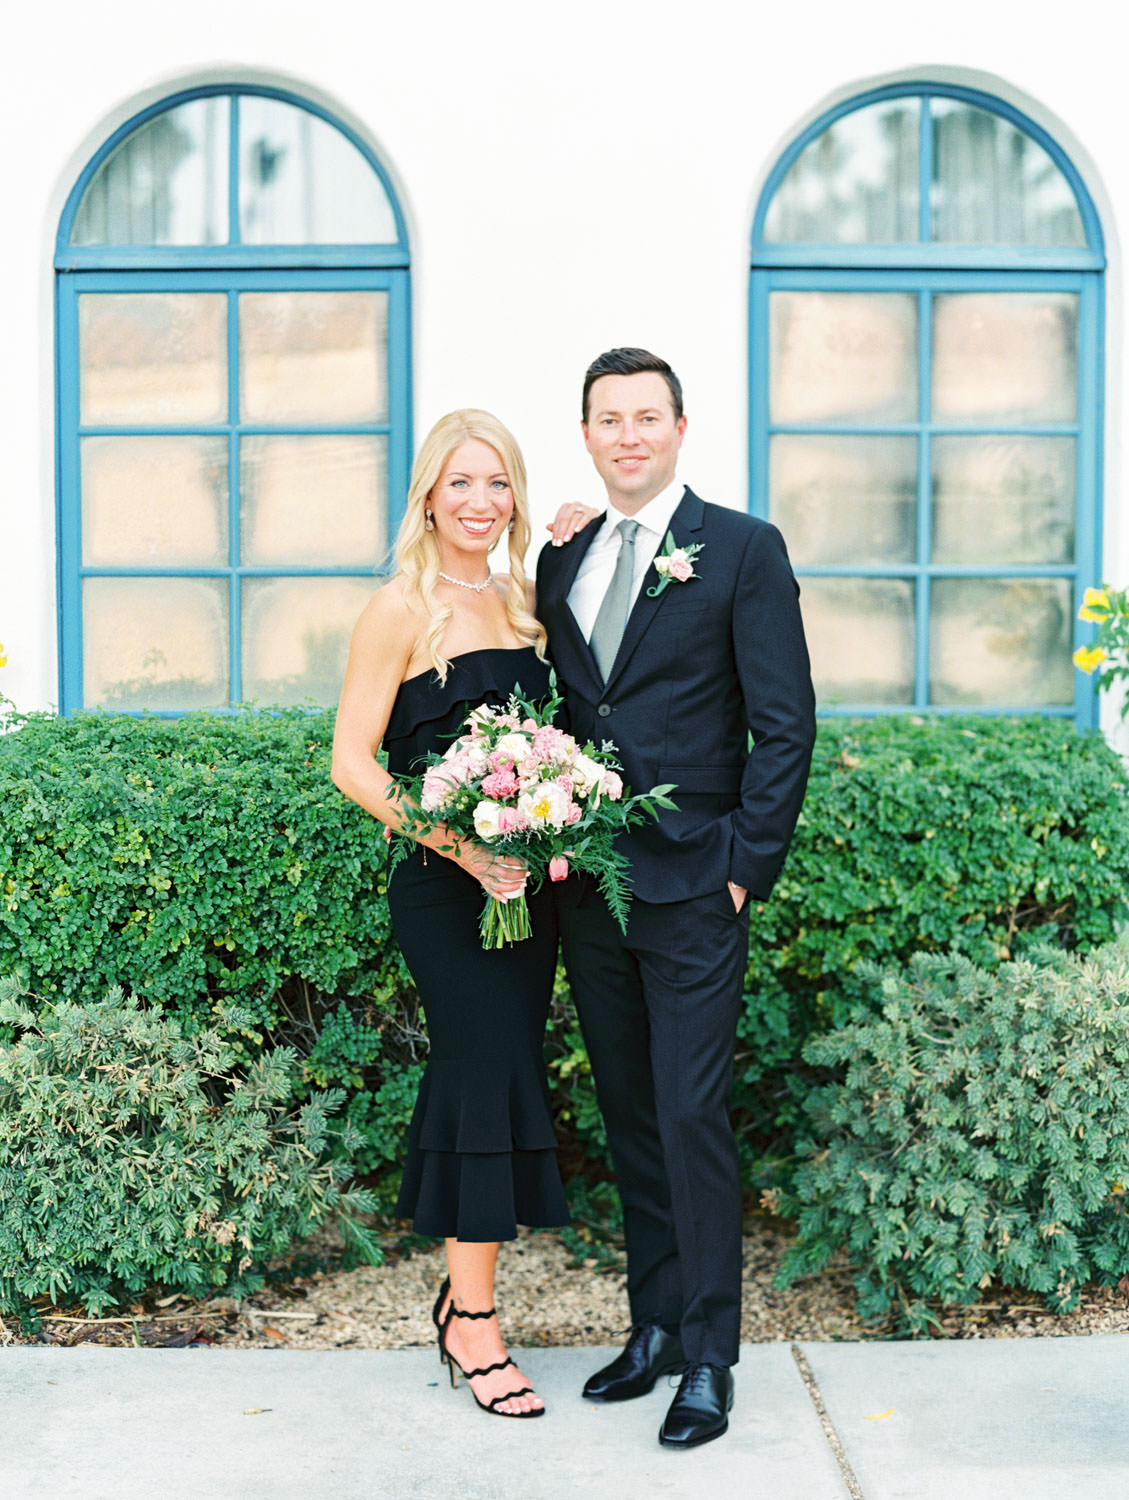 Bride in black strapless dress and black heels and groom in black suit in front of a gorgeous villa with blue windows. La Quinta Resort Engagement Photos on Film by Cavin Elizabeth Photography